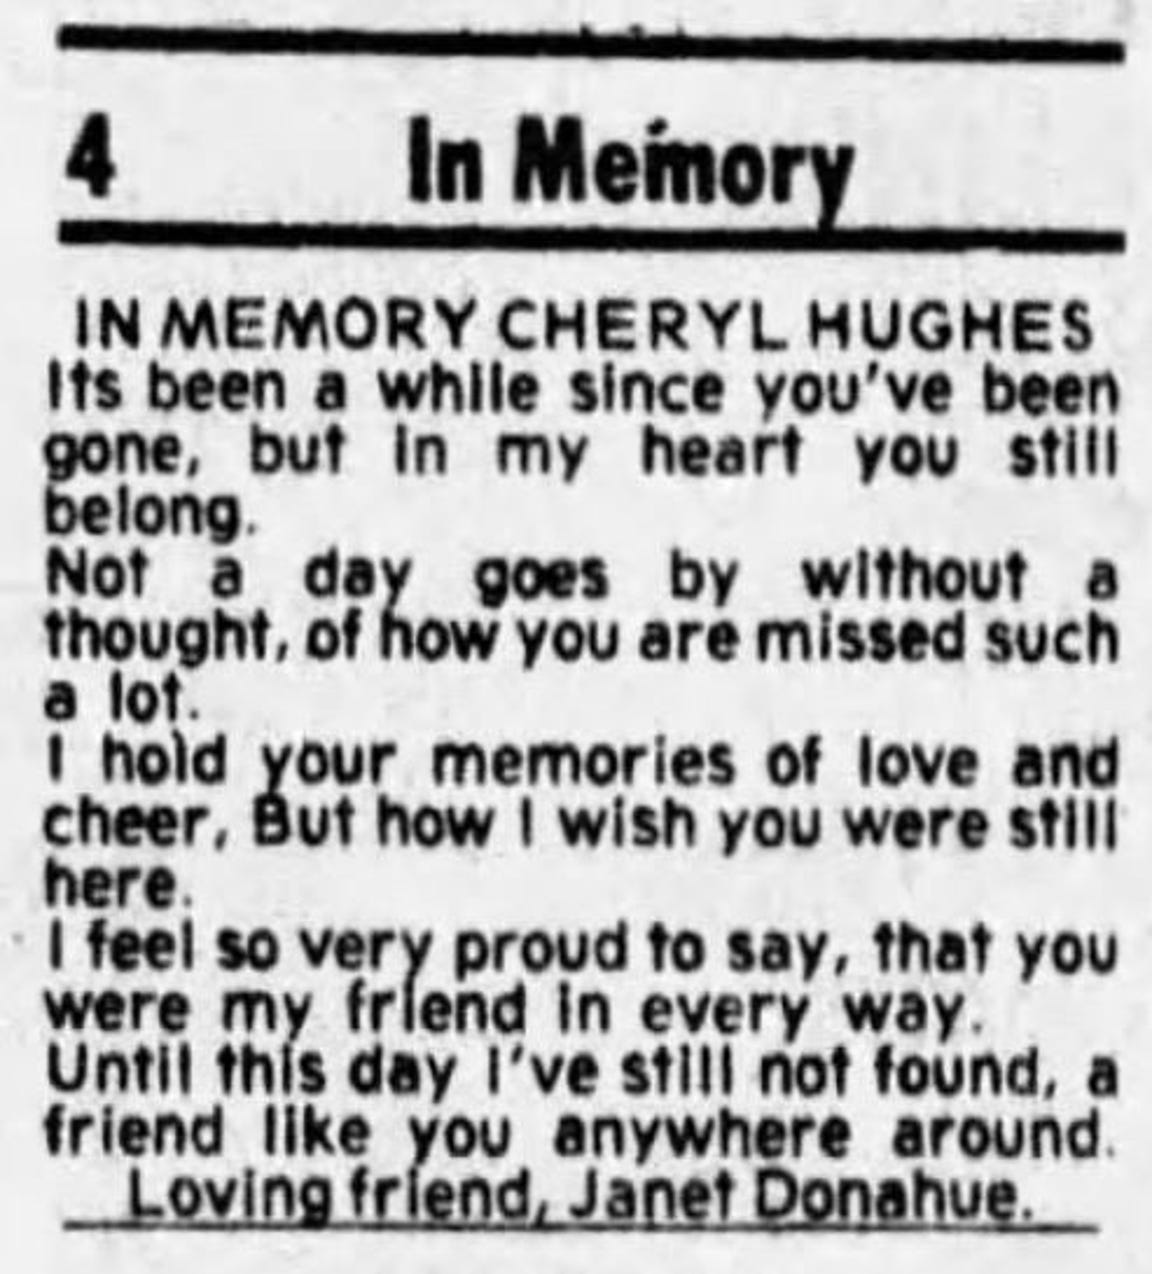 In July 1979, an Janet Donahue placed an In Memory ad for her best friend Cheryl Hughes in the Chillicothe Gazette.